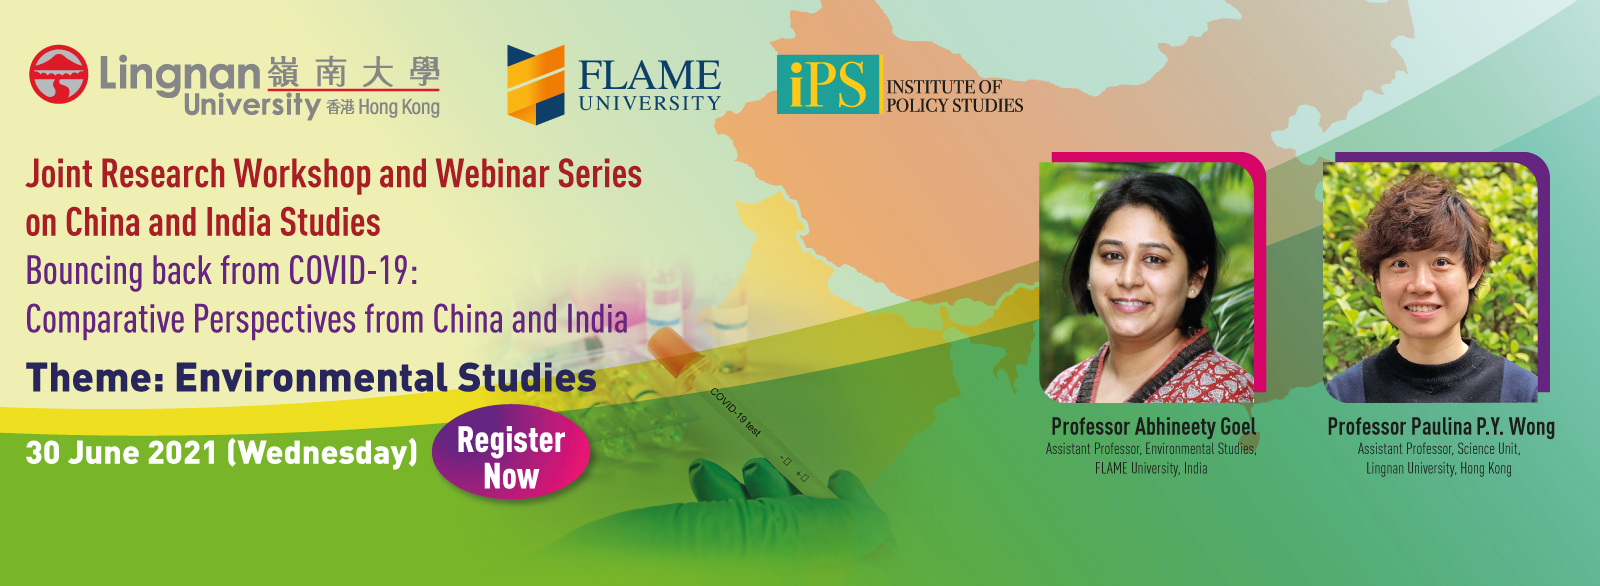 Joint Research Workshop and Webinar Series on China and India Studies - Environmental Studies